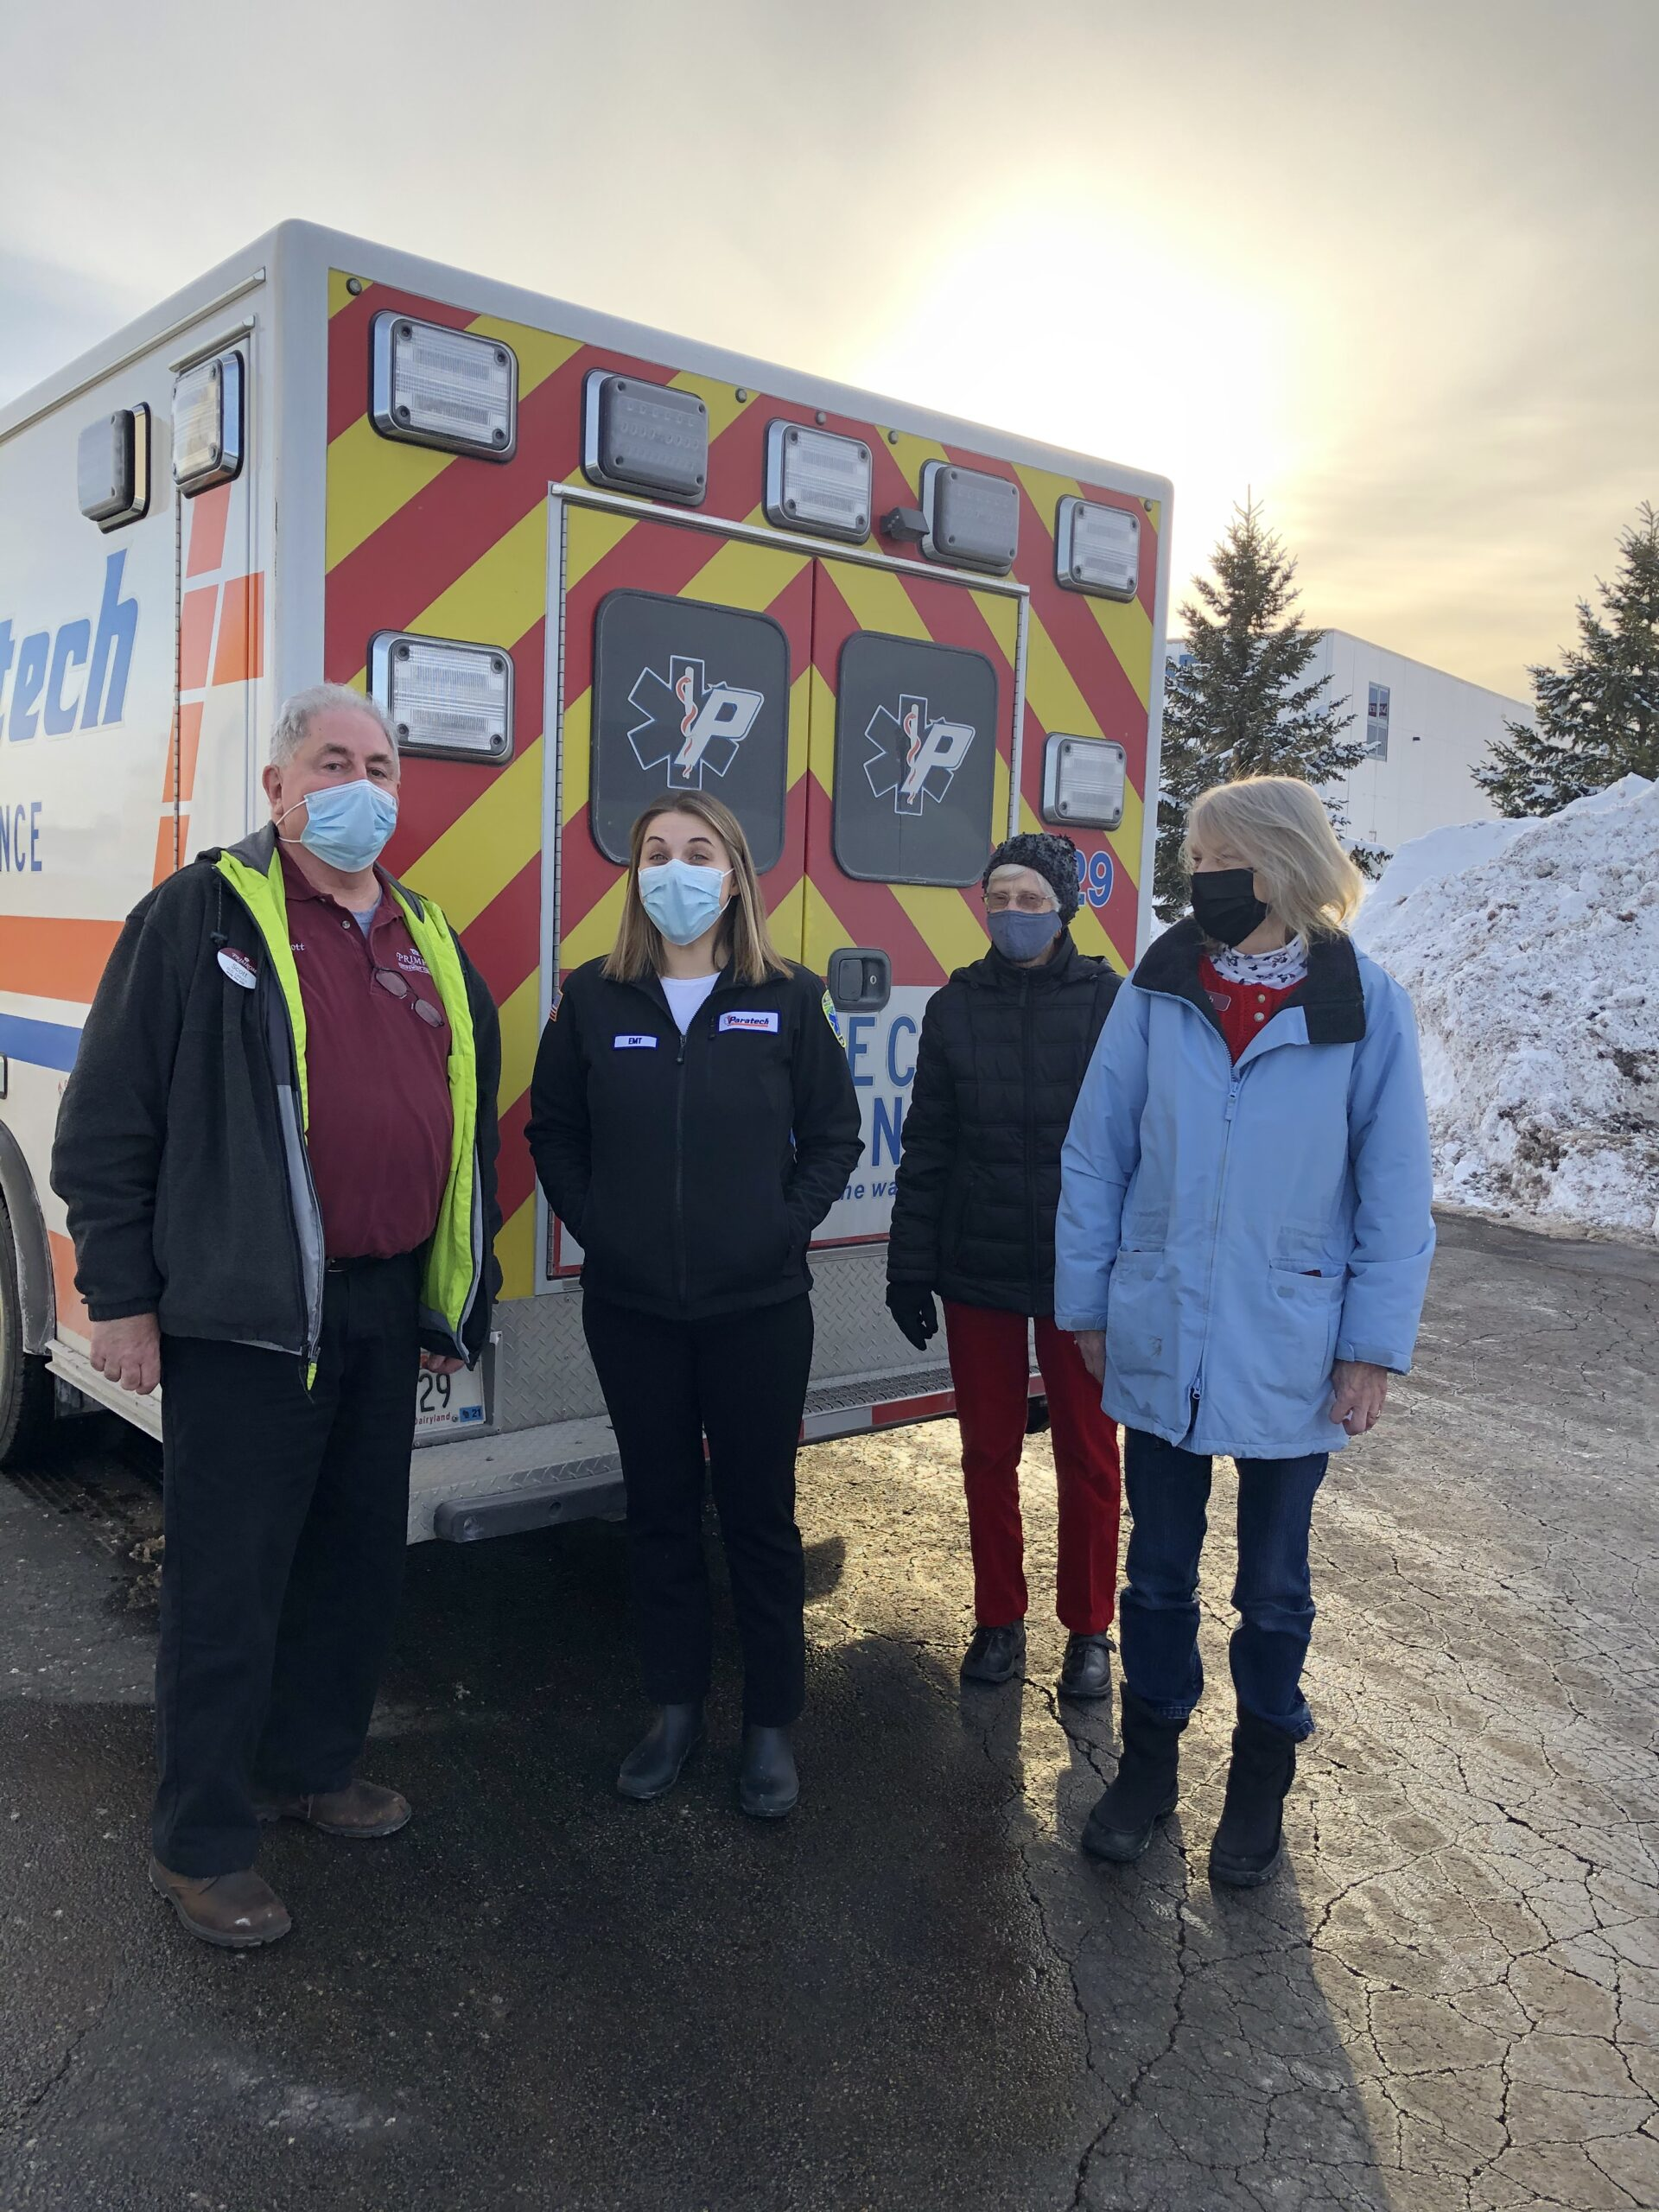 Our Primrose family surprises a EMT Superhero with a gift card from a local Restaurant